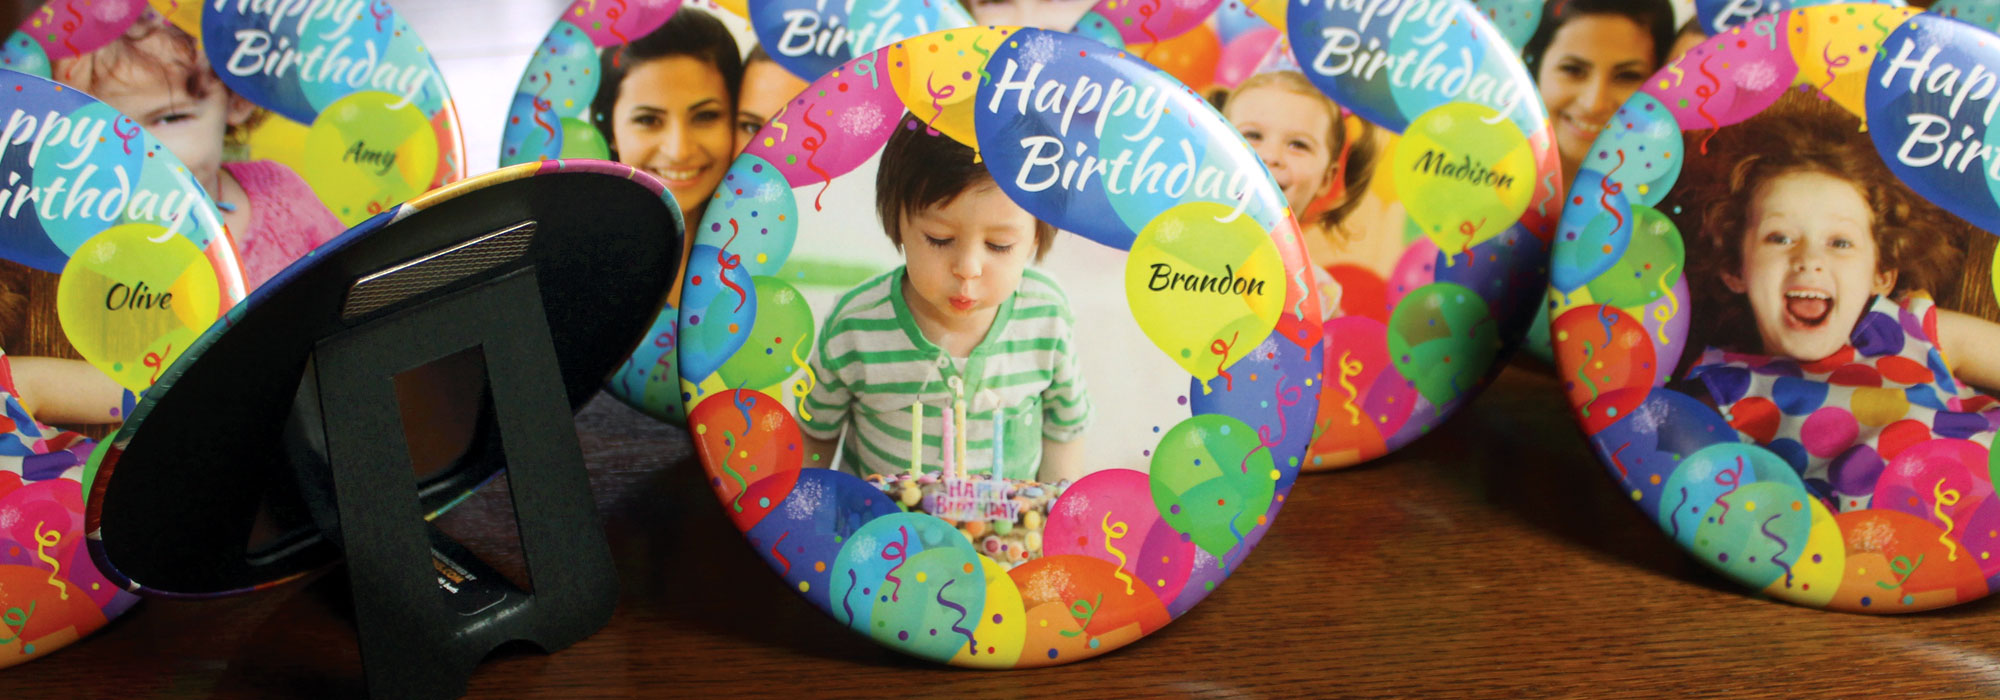 Party Balloons Inch Magnetic Easel